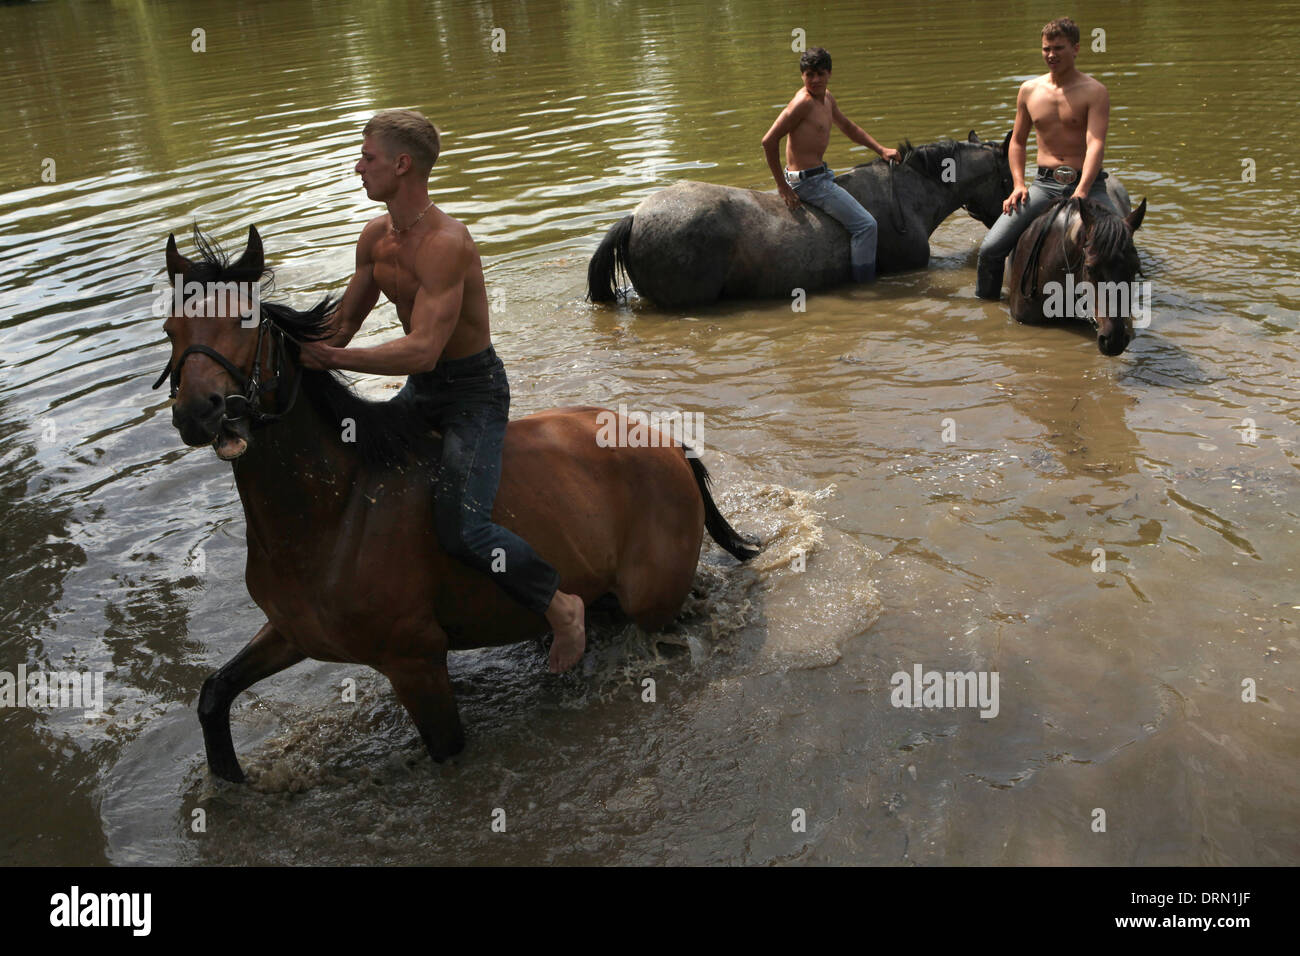 Horse bathing in a pond near Mozhaysk, Russia. Stock Photo